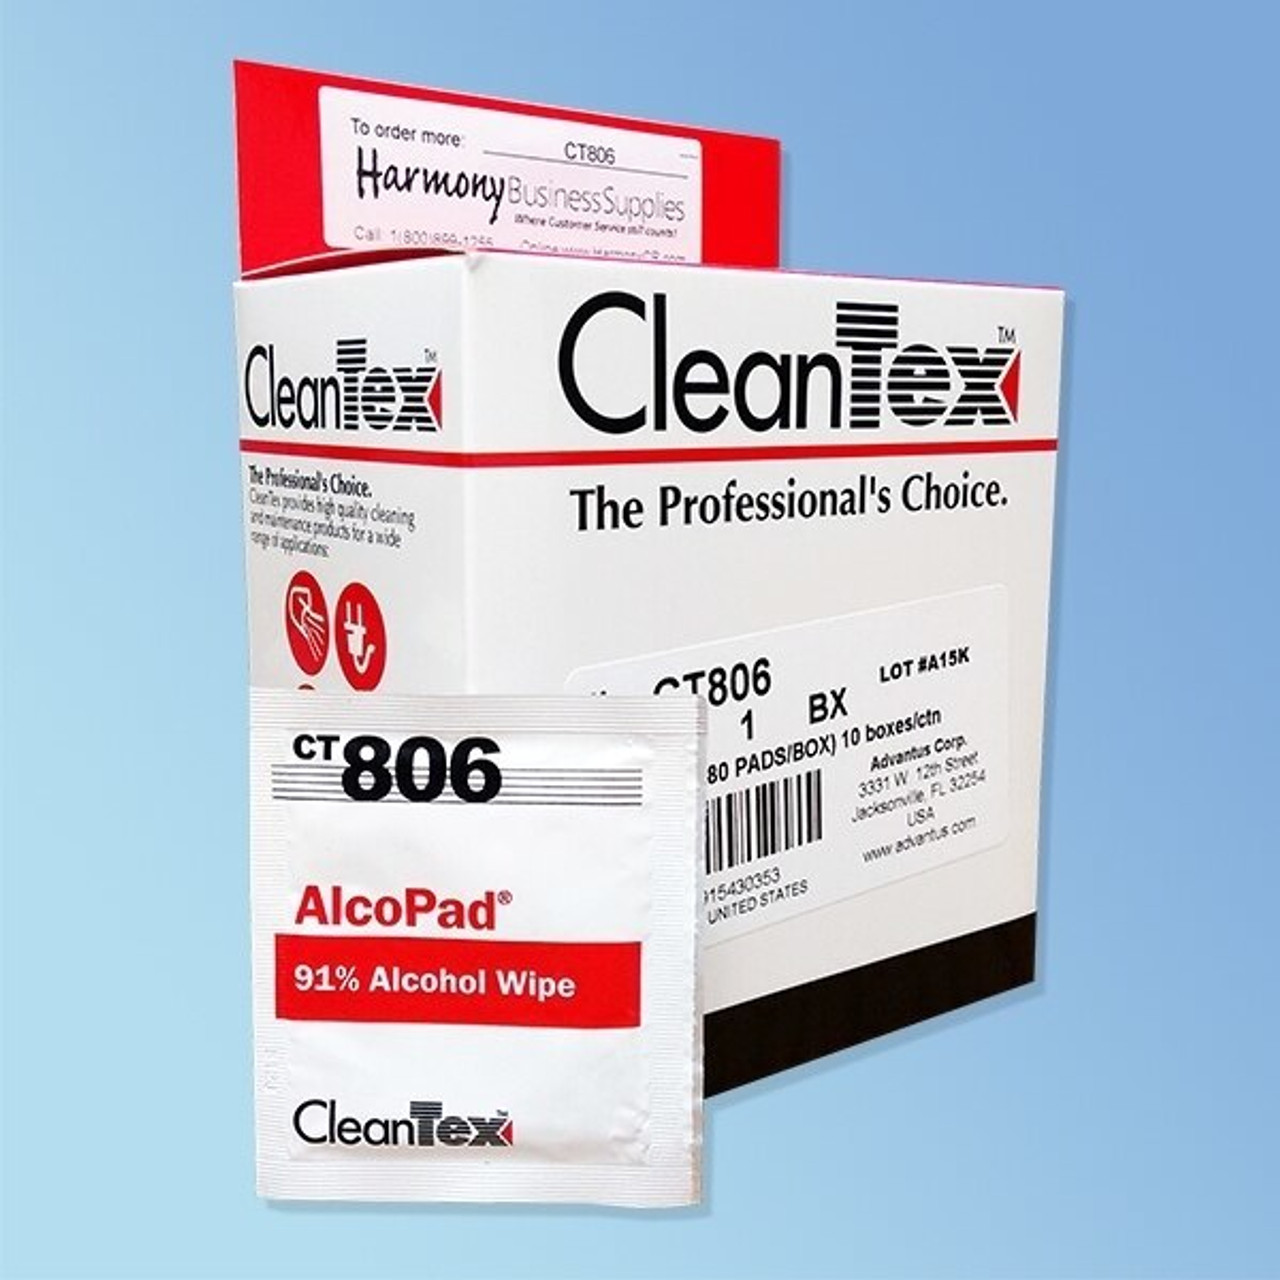 CleanTex 91% Alcohol Wipes